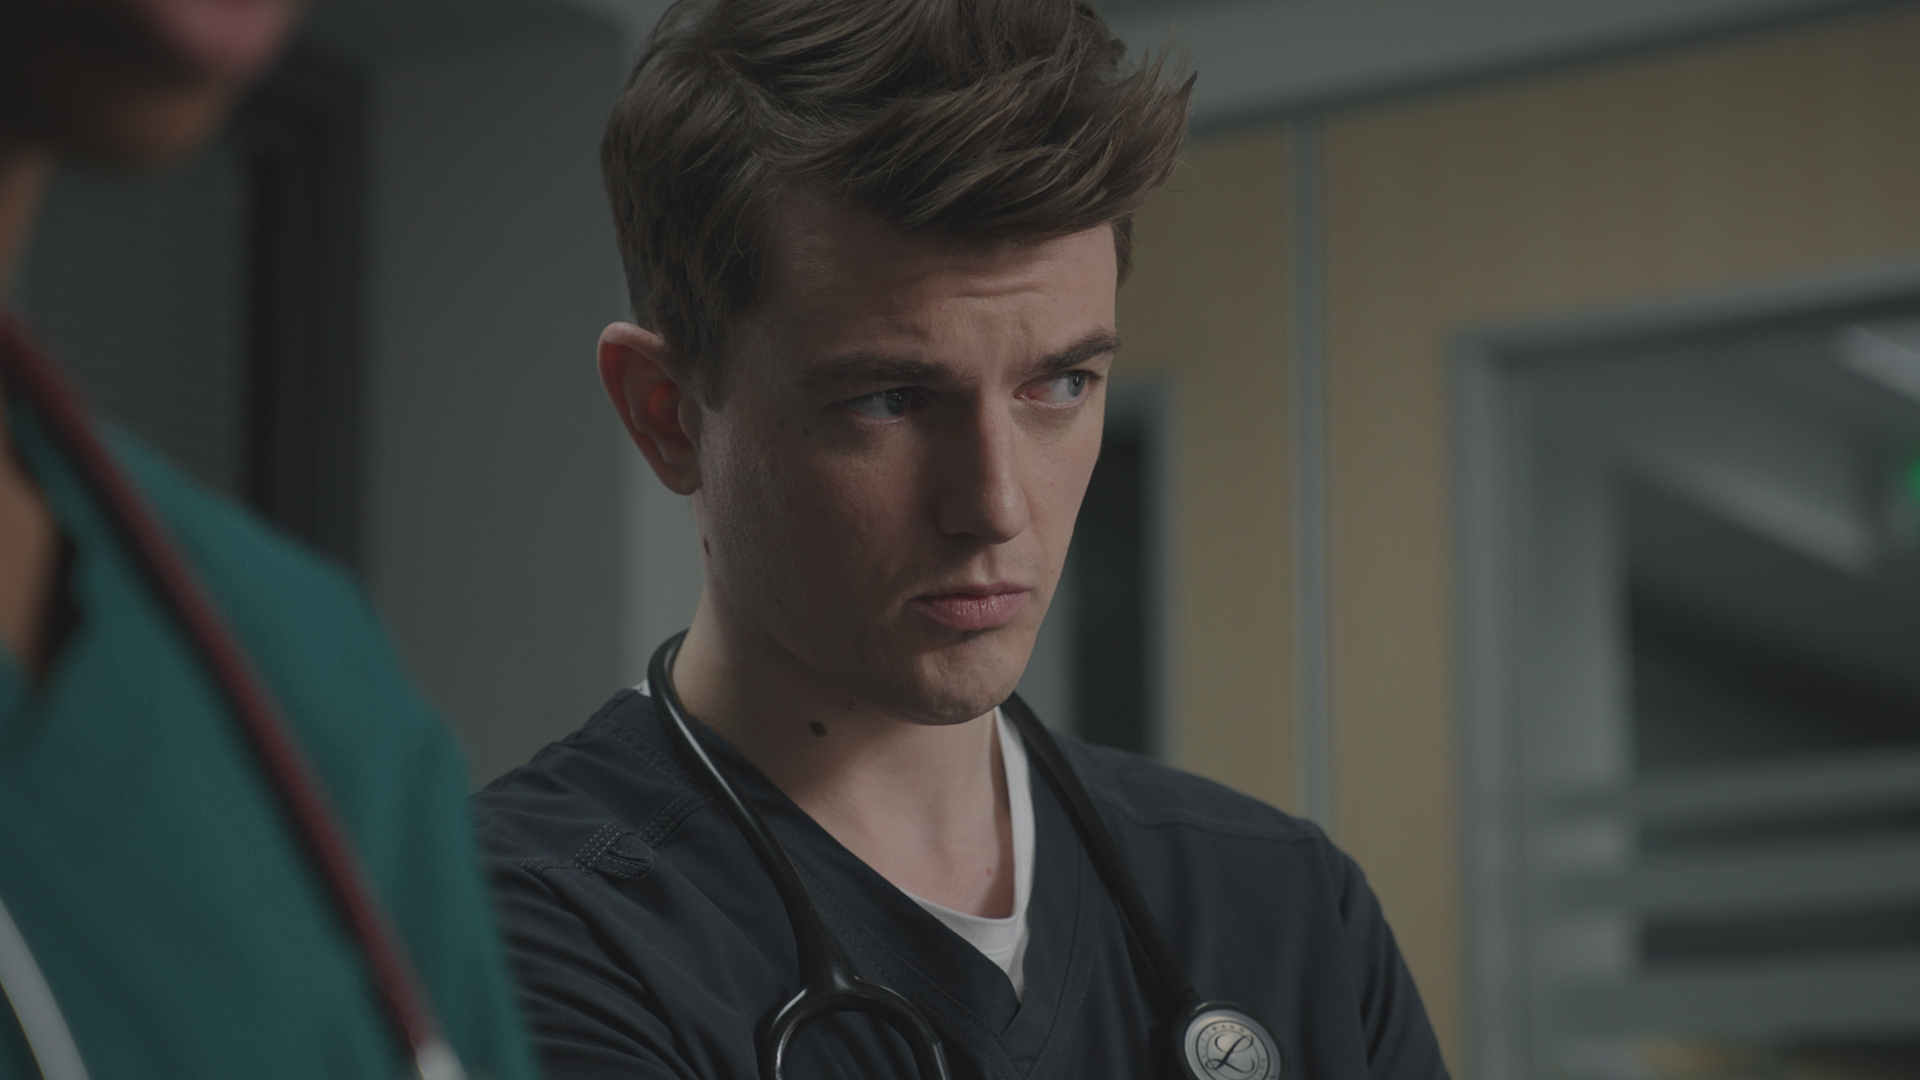 Casualty spoilers: Will kills young boy in shocking twist